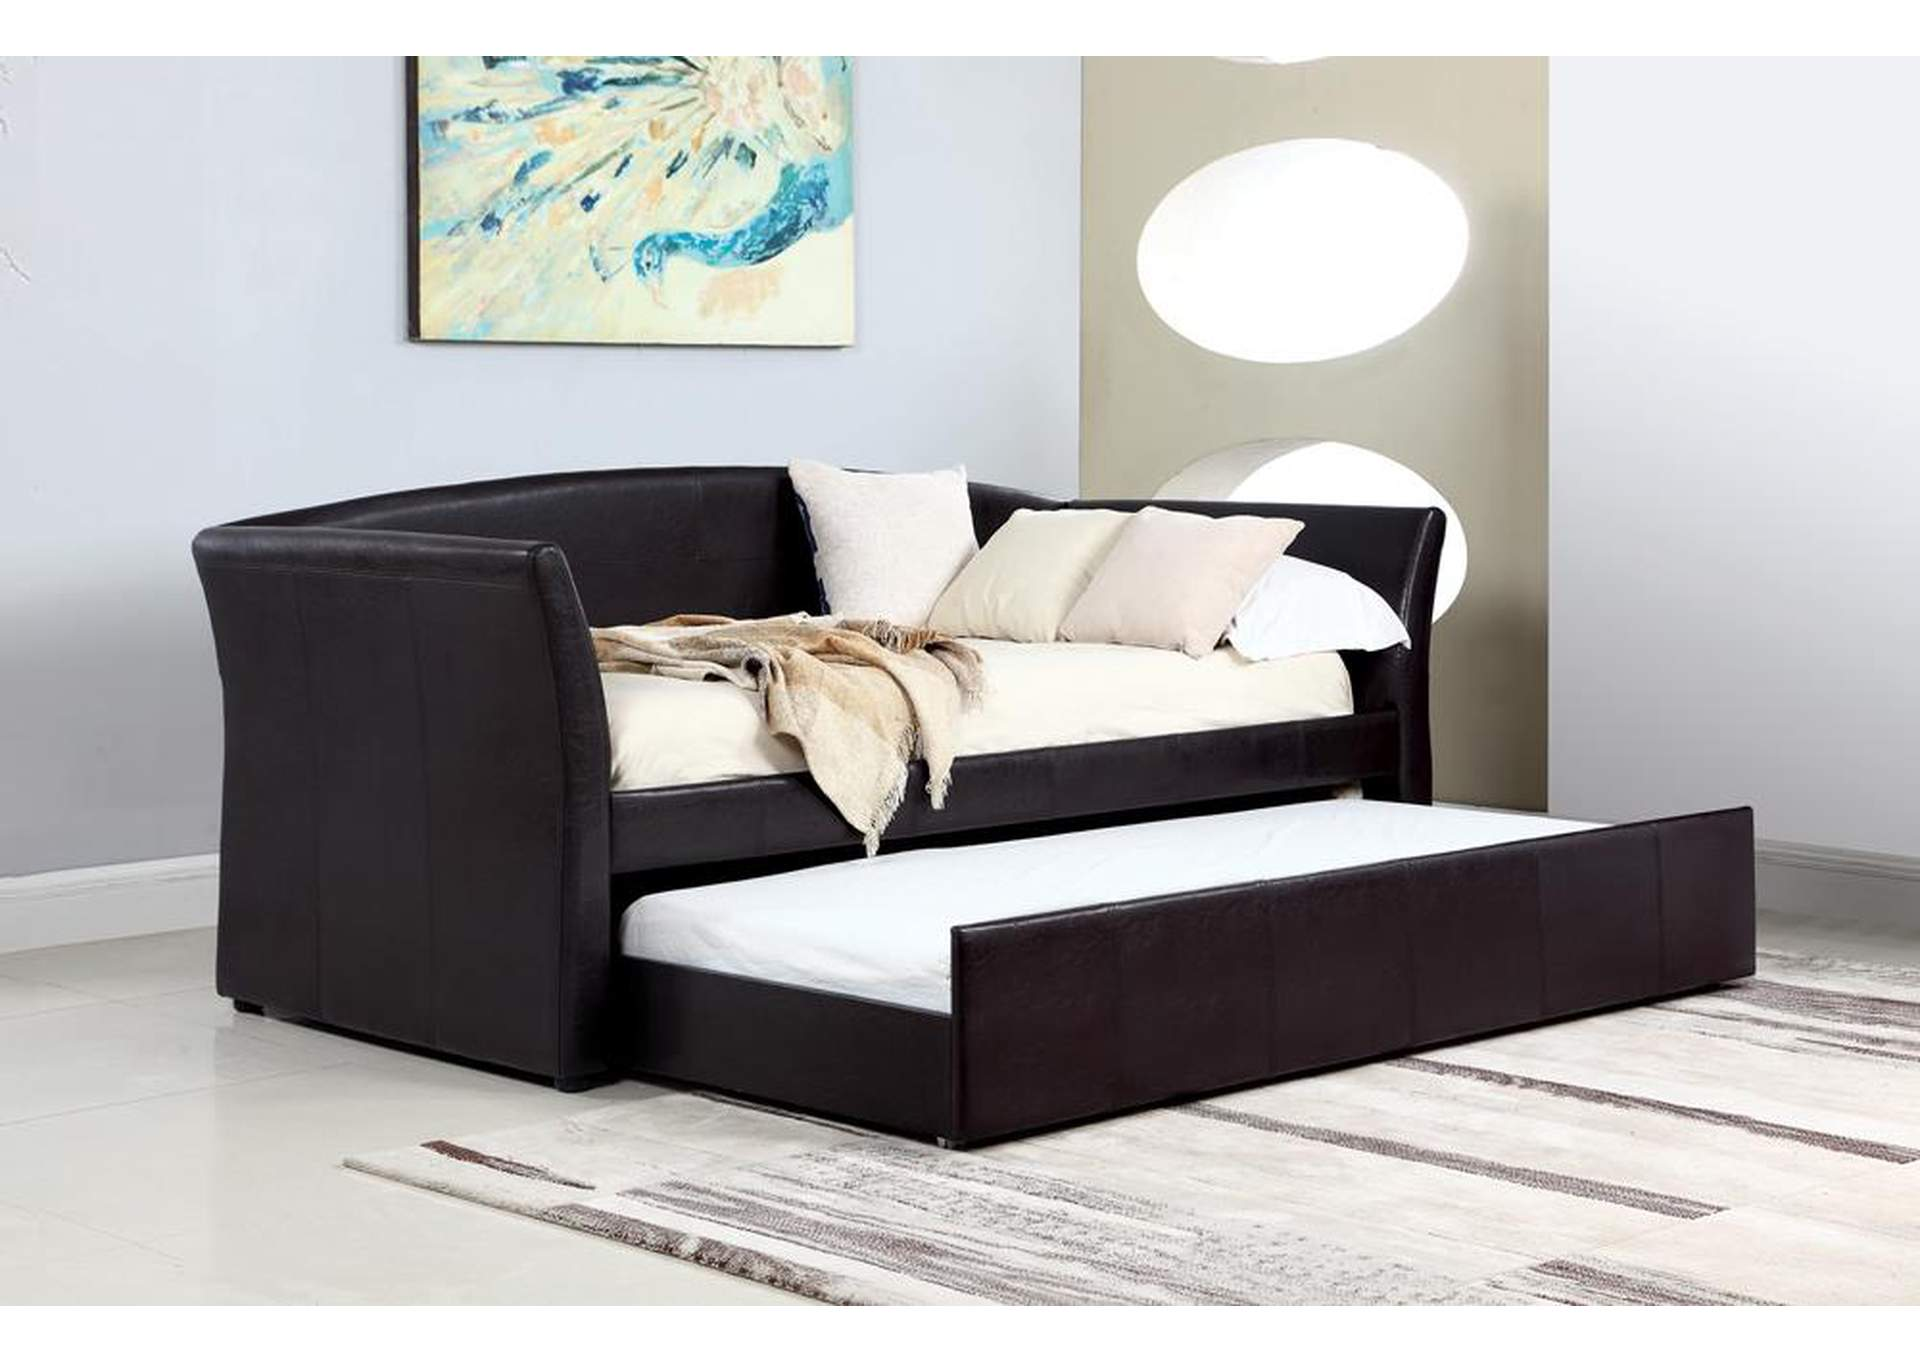 Charmant Dark Brown Upholstered Daybed,Coaster Furniture